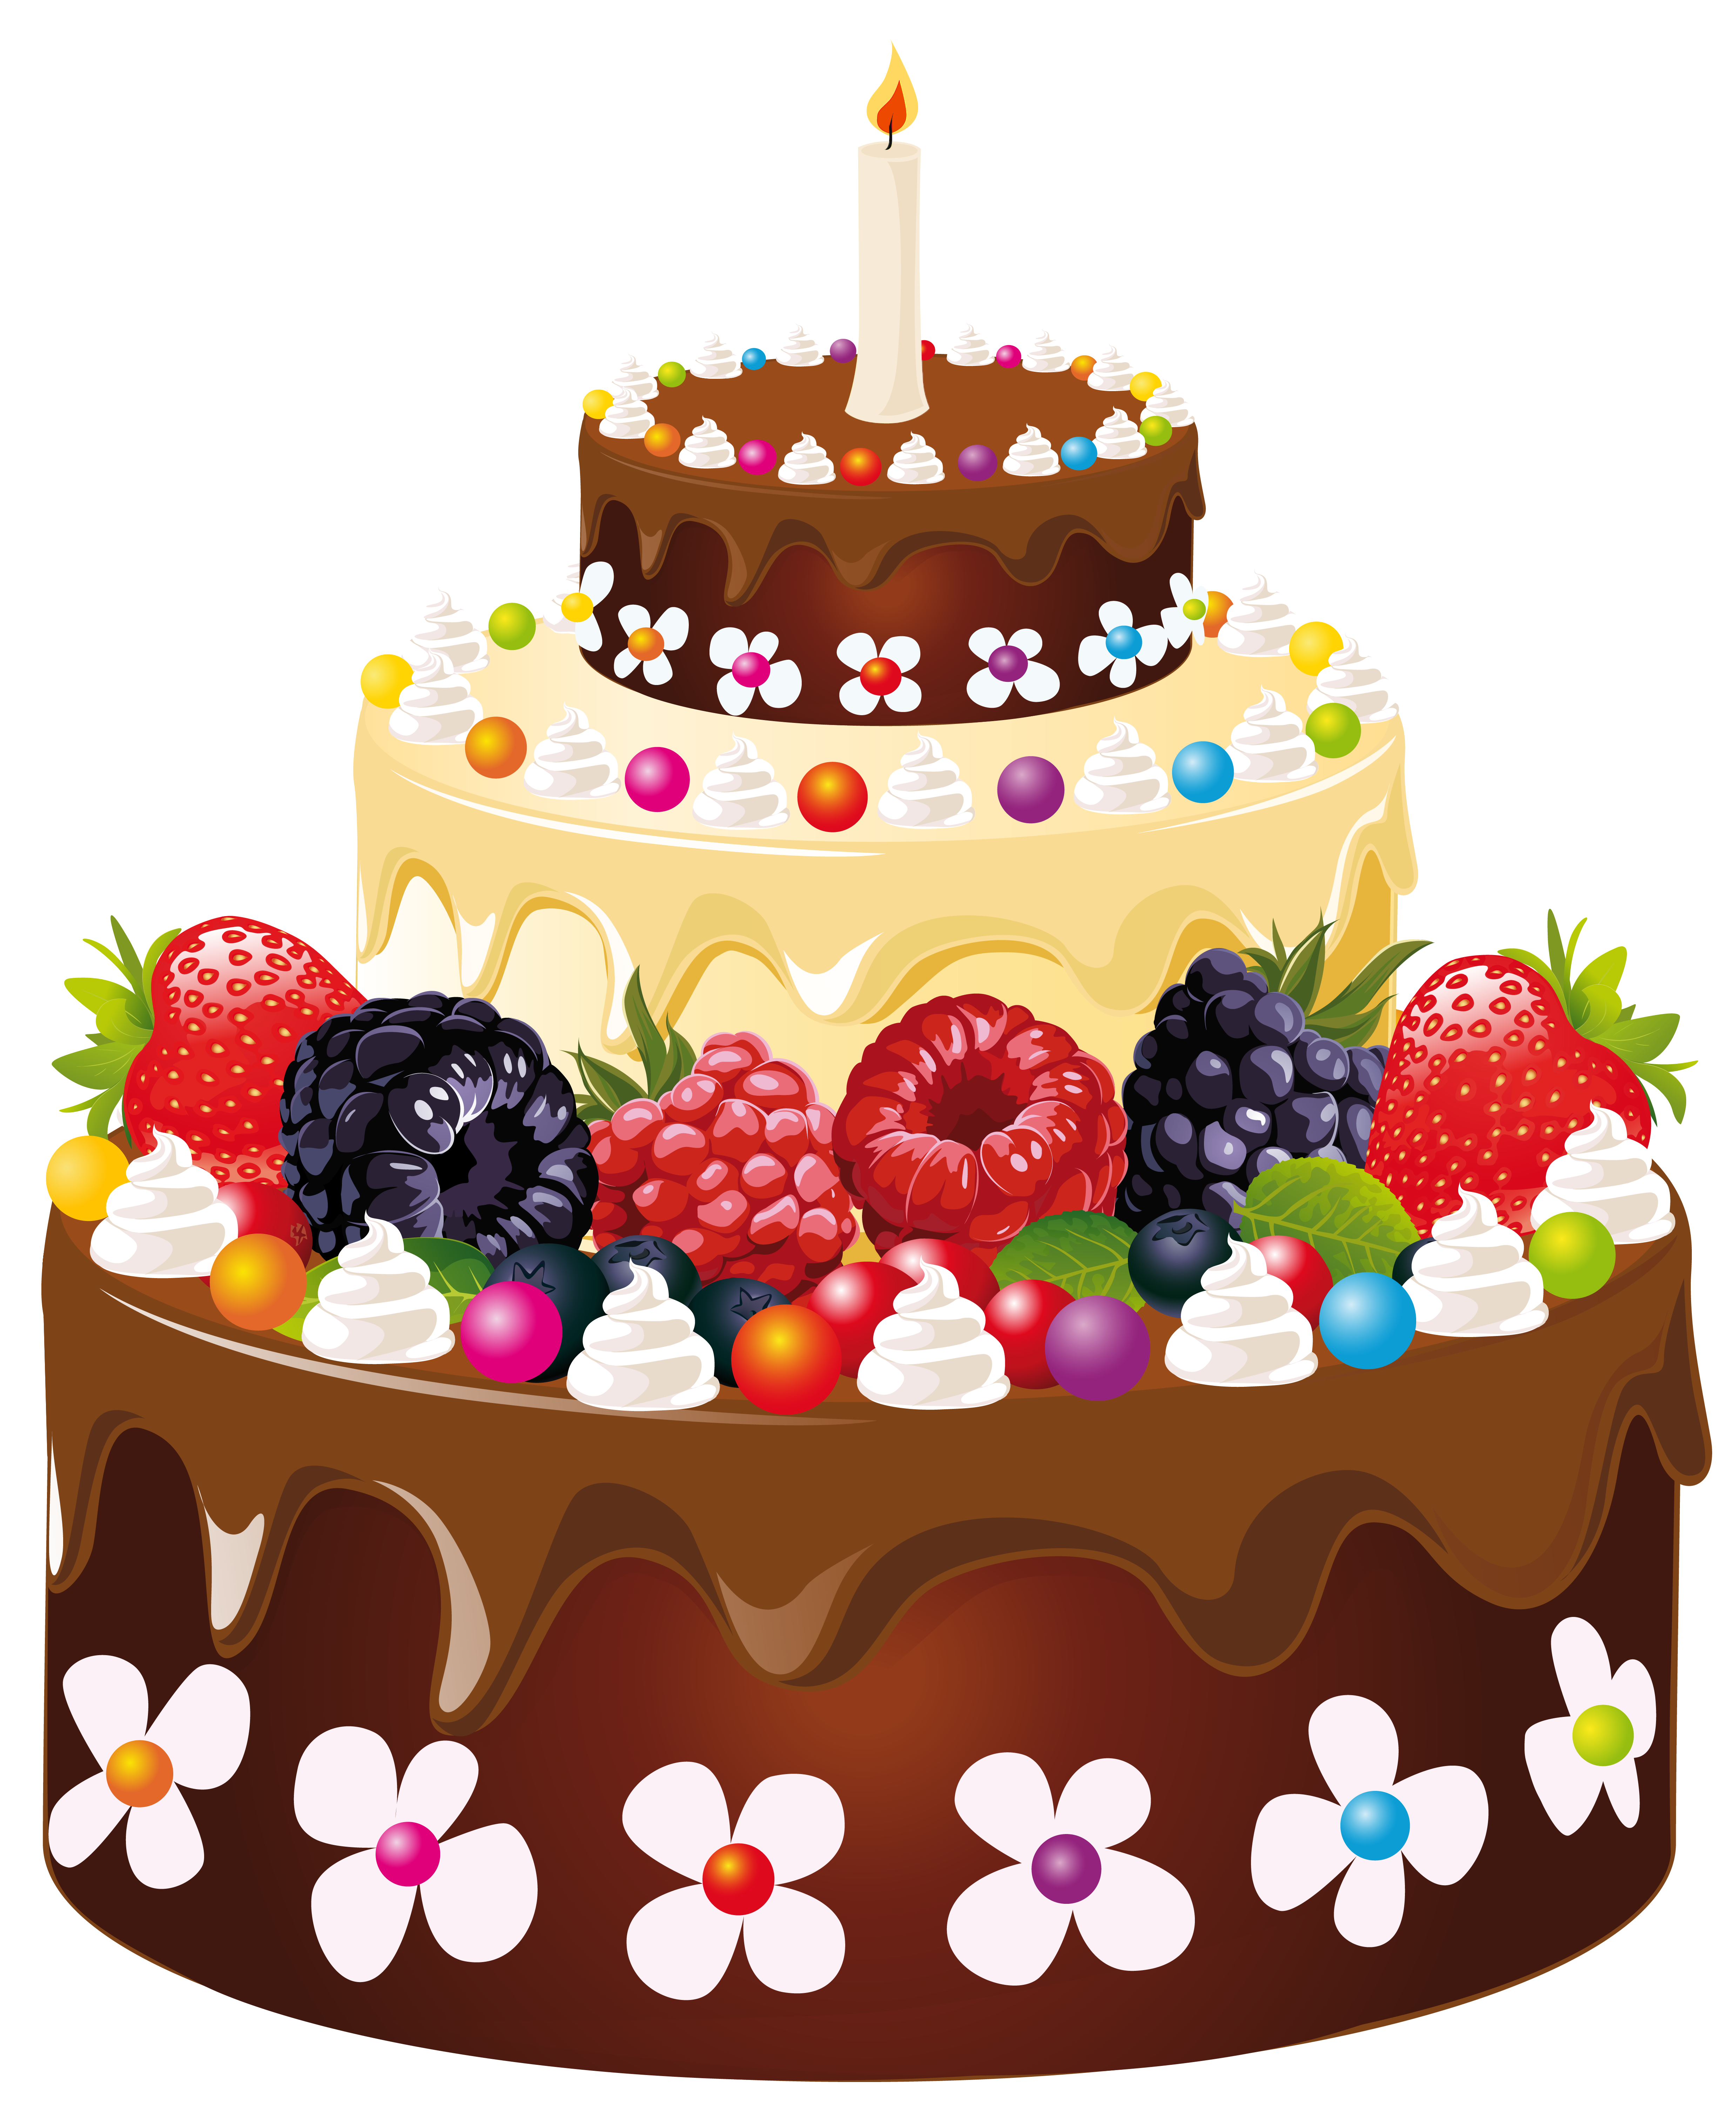 Birthday Cake with Candle PNG Clipart Image.